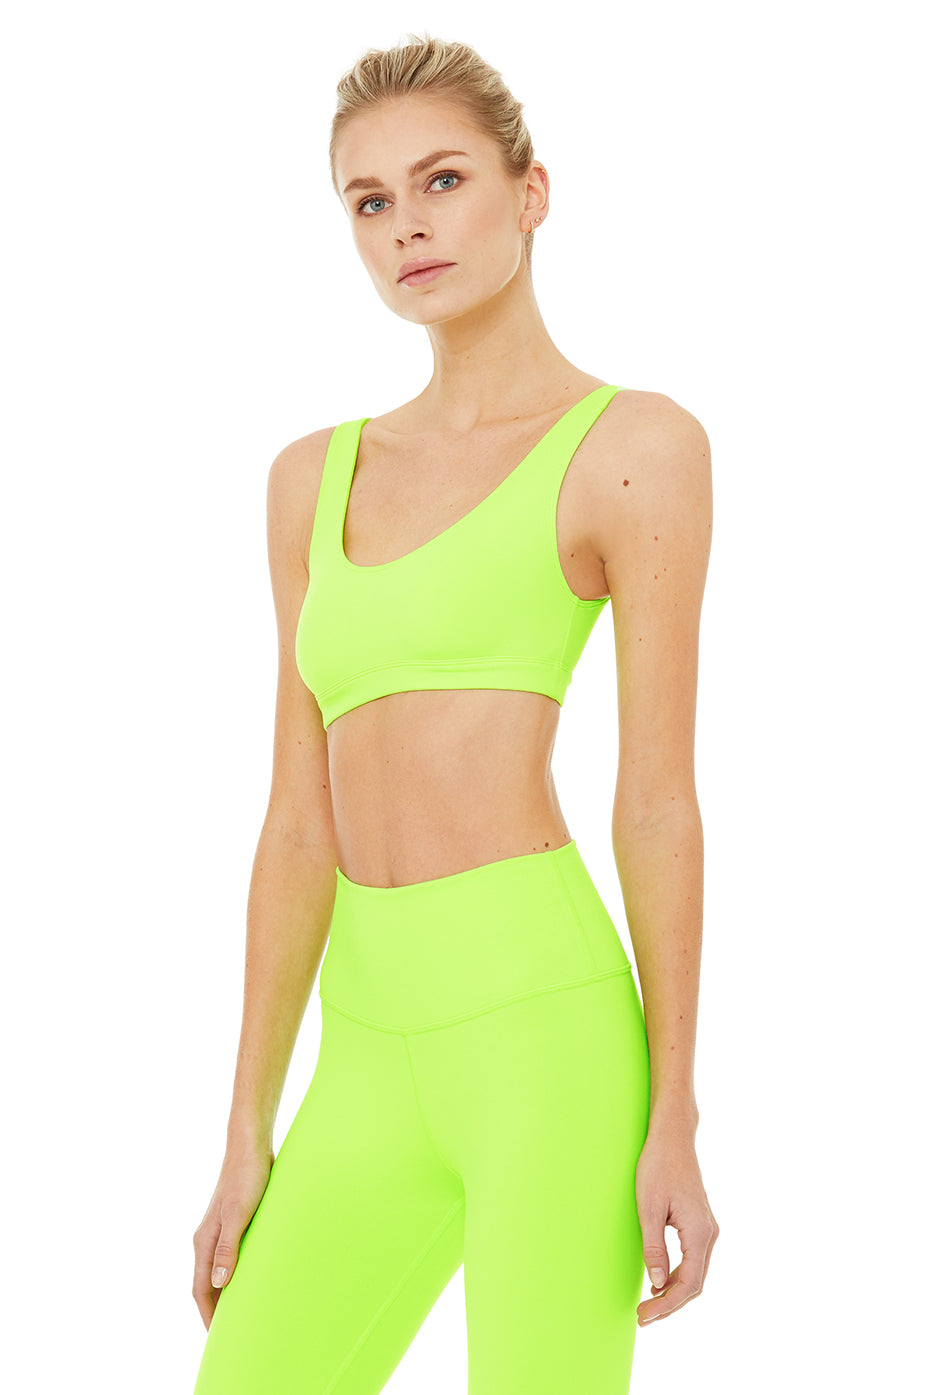 Limited-Edition Exclusive Ambient Neon Bra